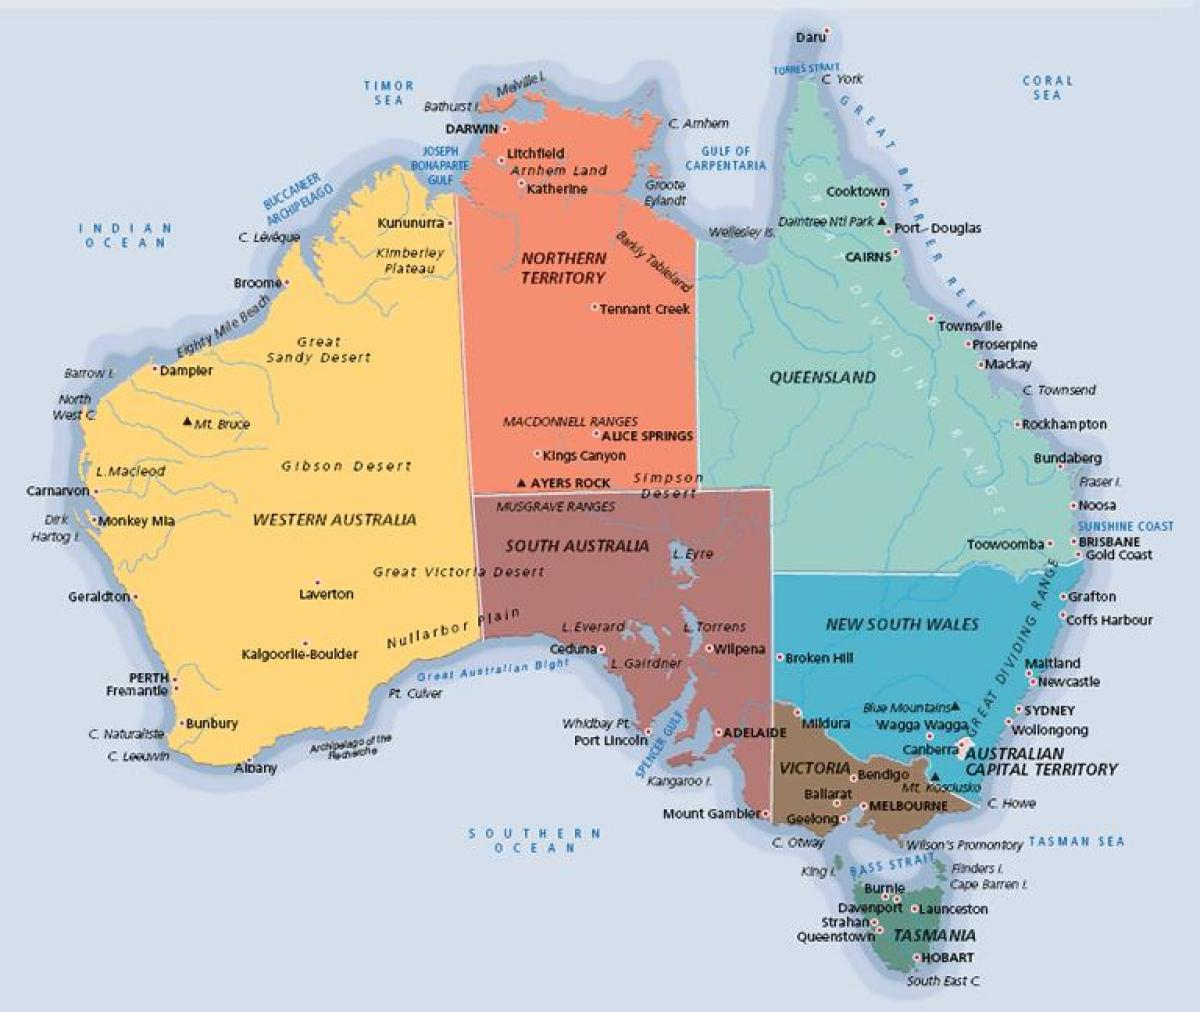 Australia New Zealand Map.Australia Map Labeled Labeled Map Of Australia Australia And New